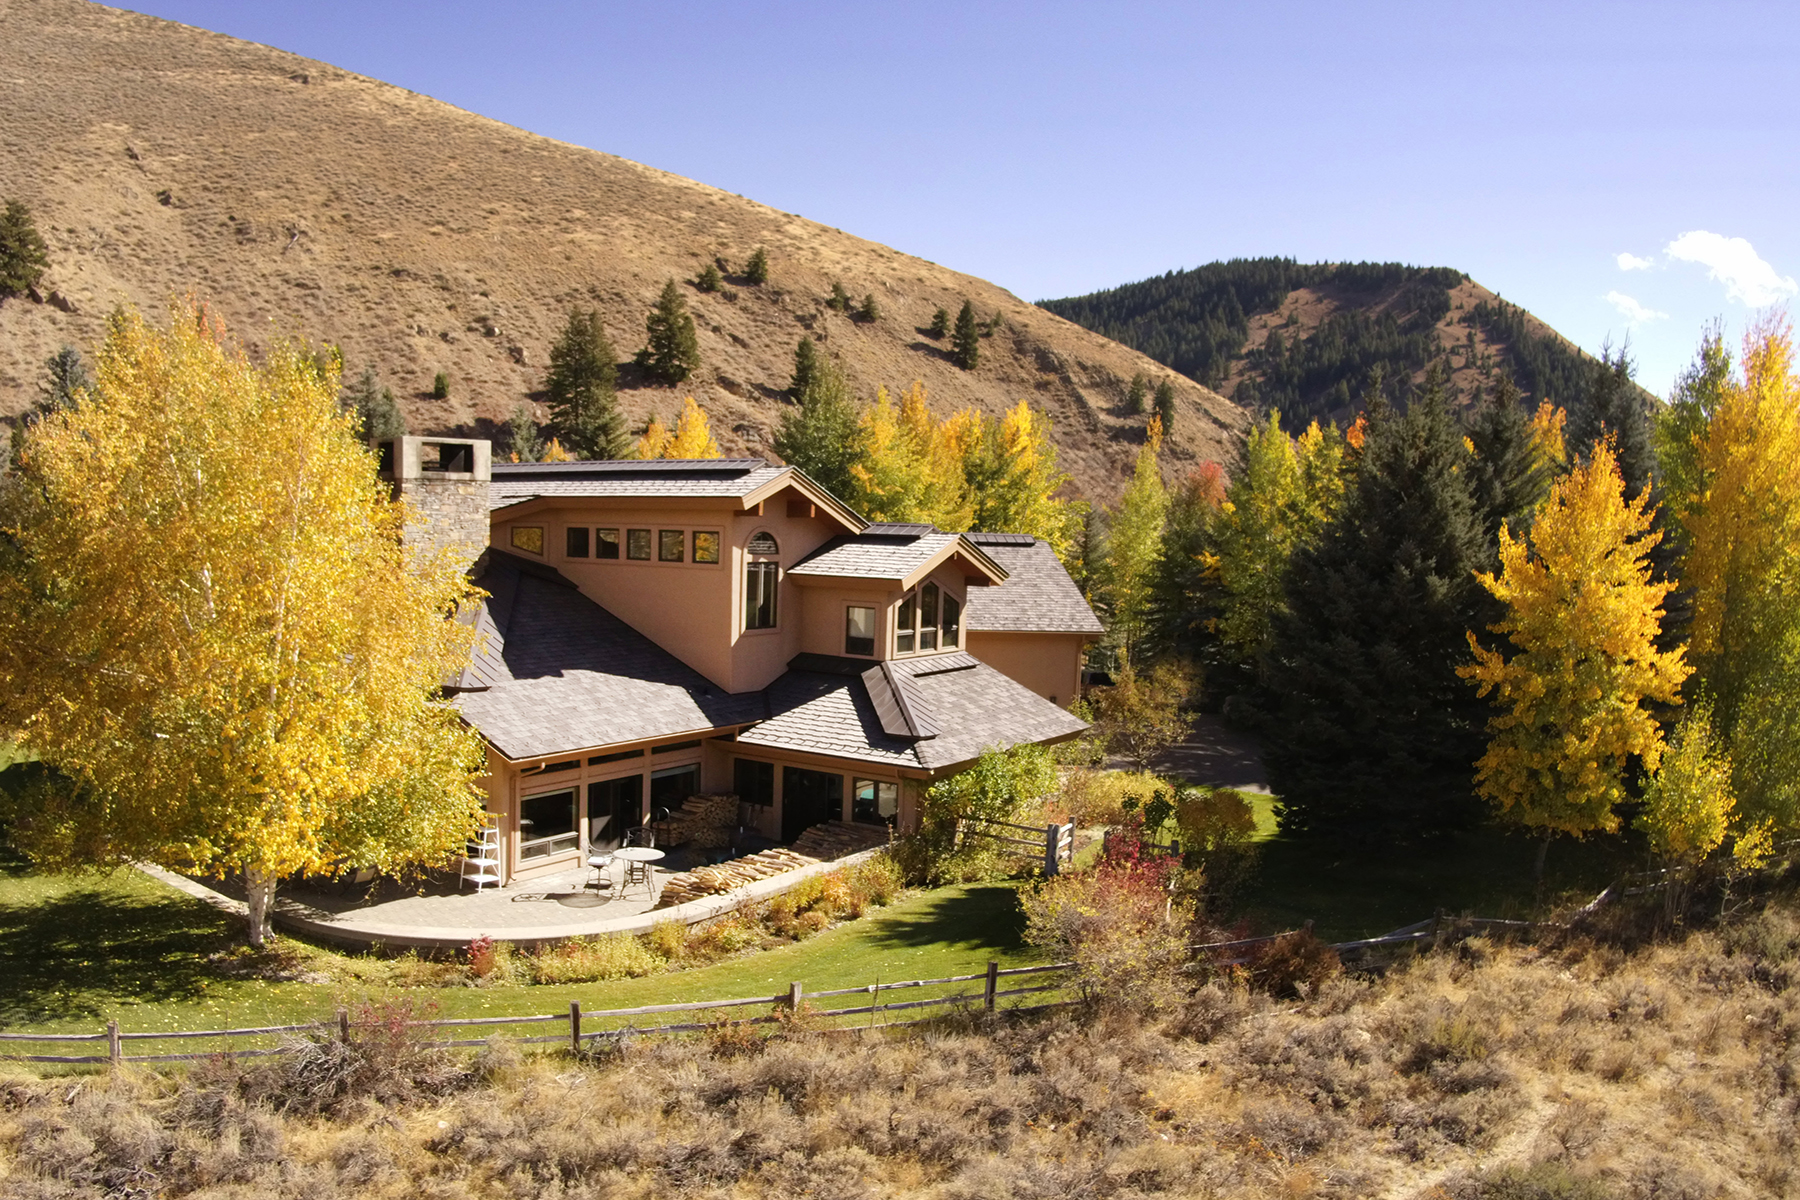 Single Family Homes for Sale at Elevated Gimlet with Boulder Mountain View 345 Wall Street Ketchum, Idaho 83340 United States